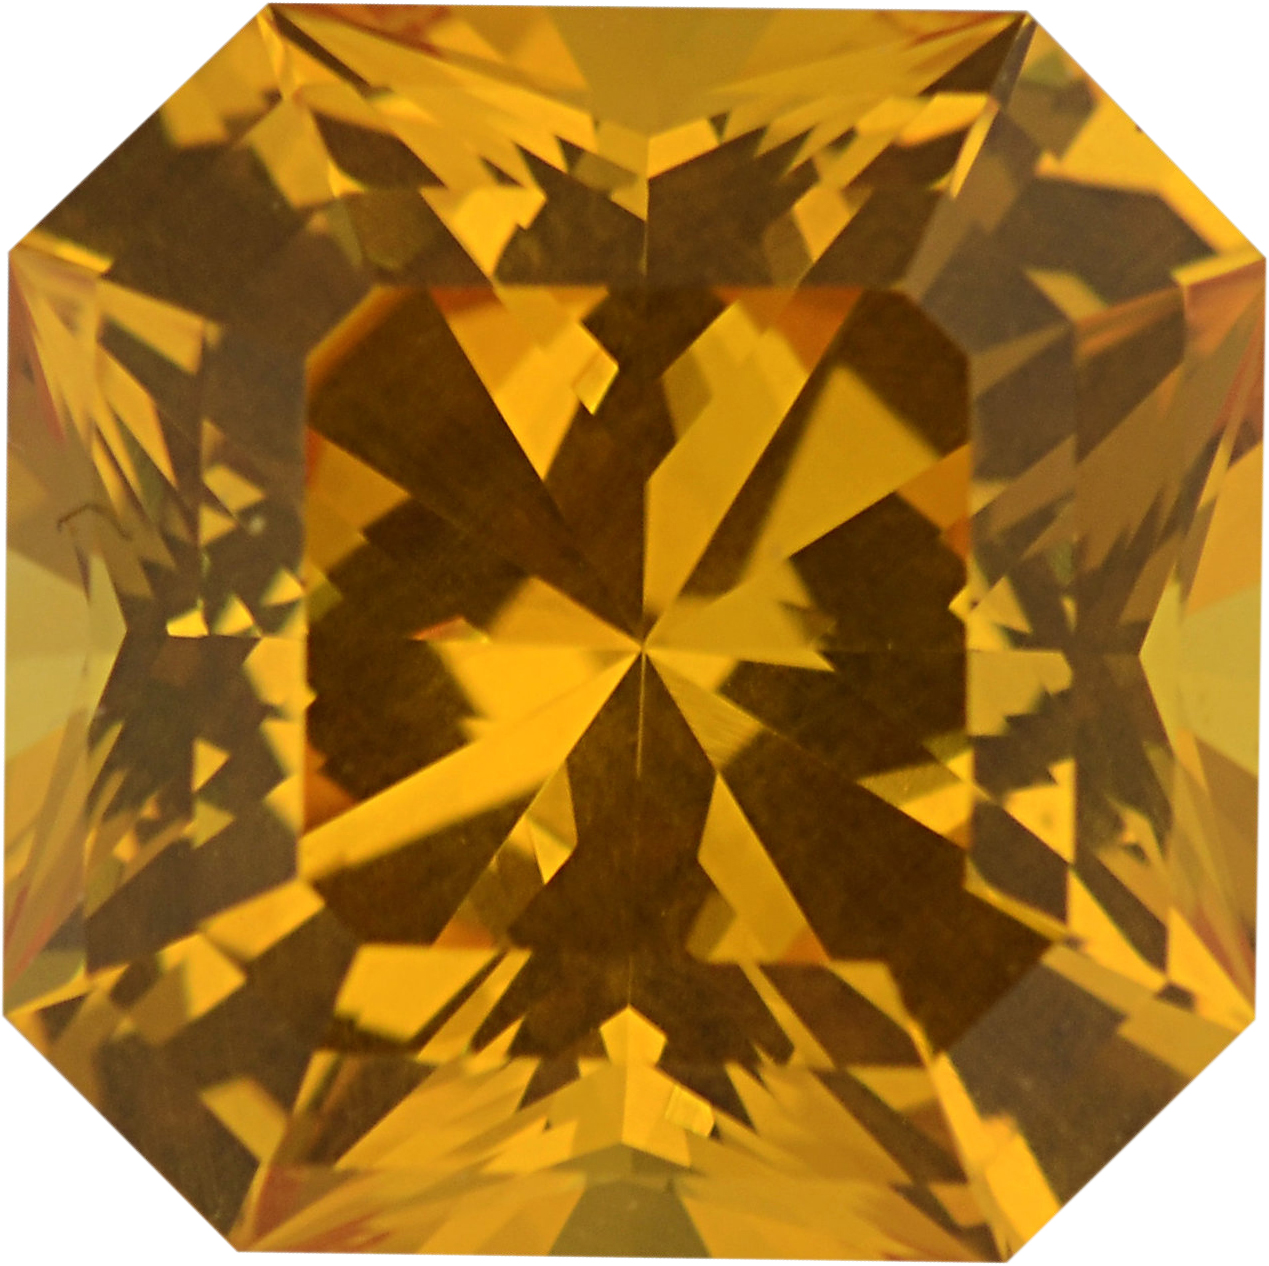 Attractive Sapphire Loose Gem in Asscher Cut, Vivid Orangy Yellow, 7.52 x 7.50  mm, 2.42 Carats